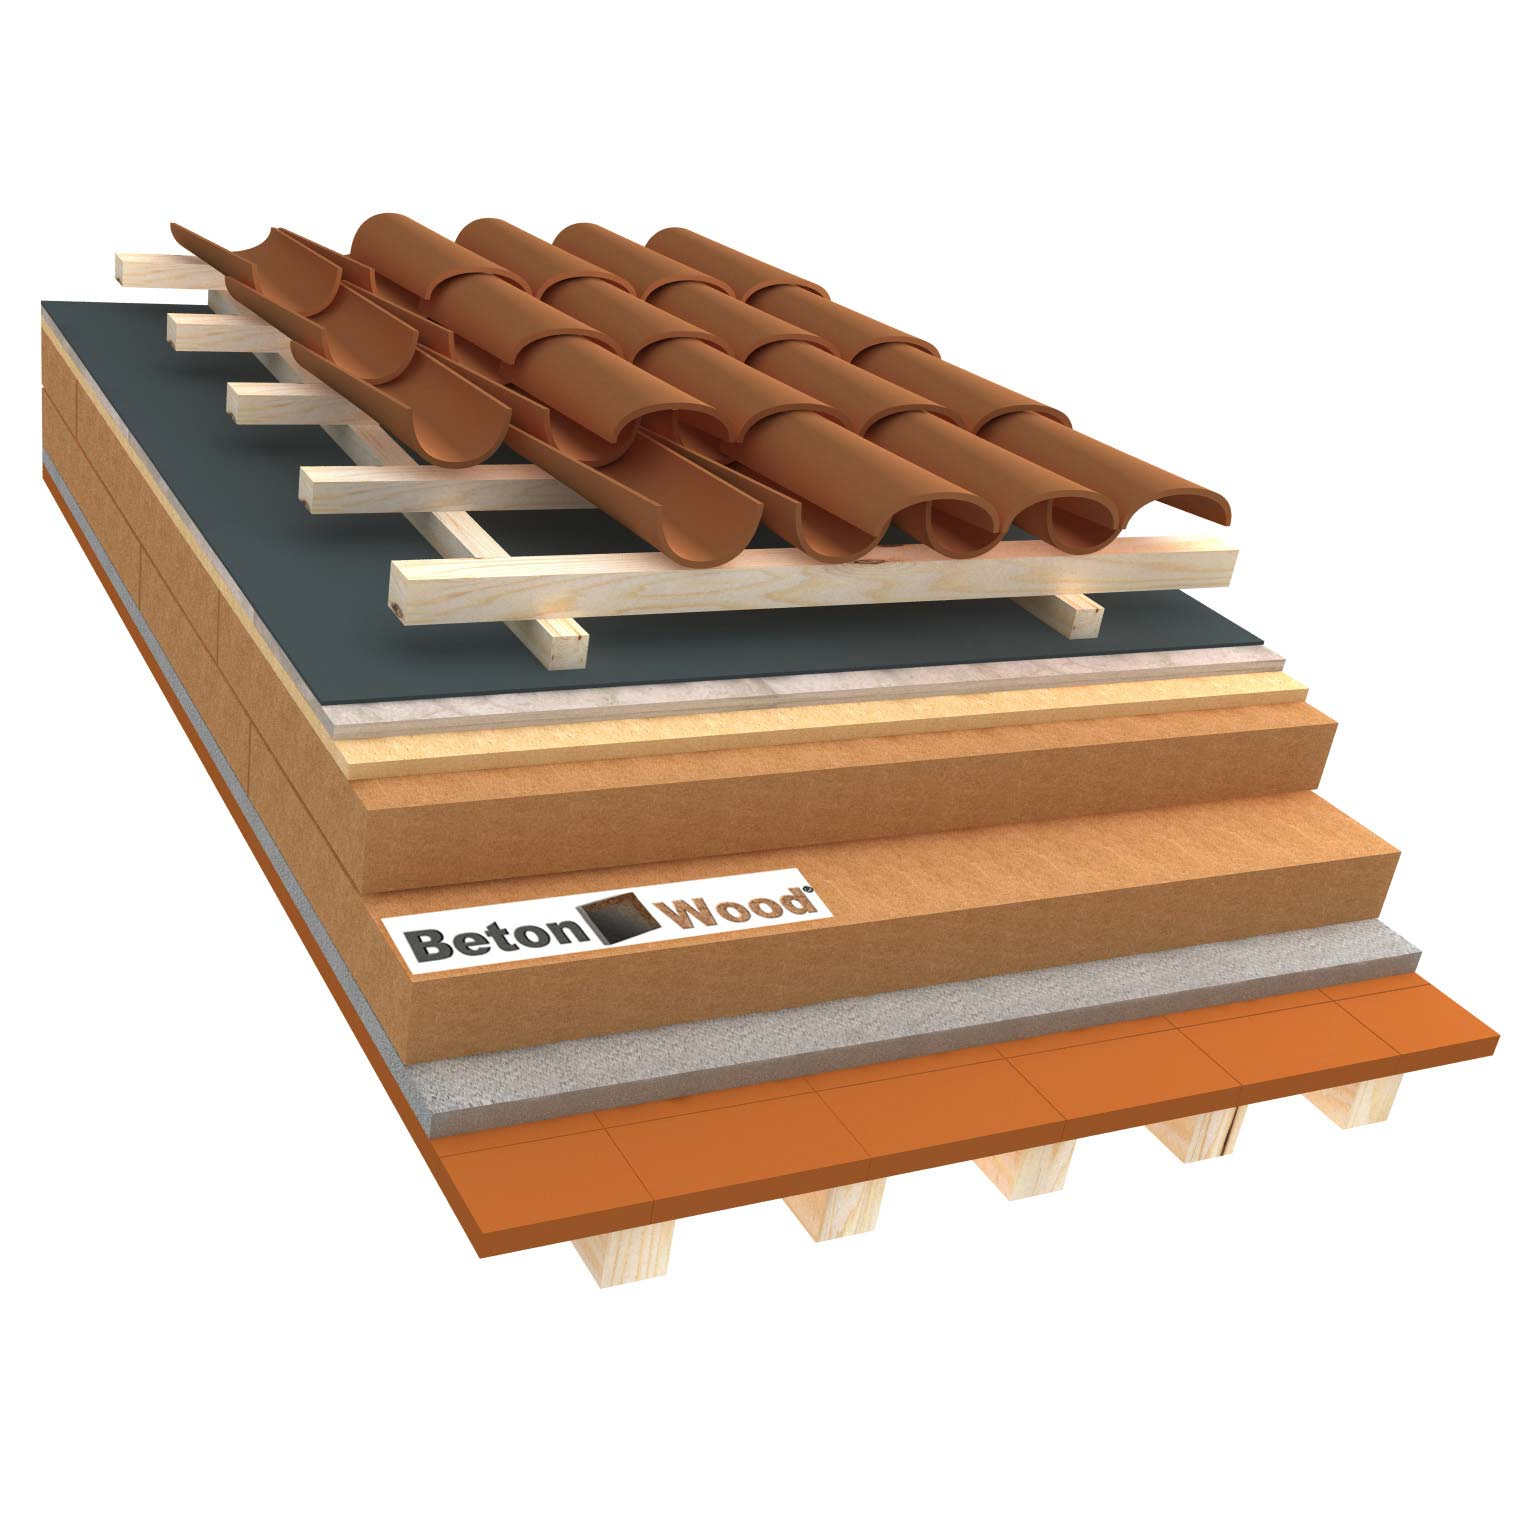 Ventilated roof with wood fibre board Isorel, Special and cement bonded particle boards on terracotta tiles